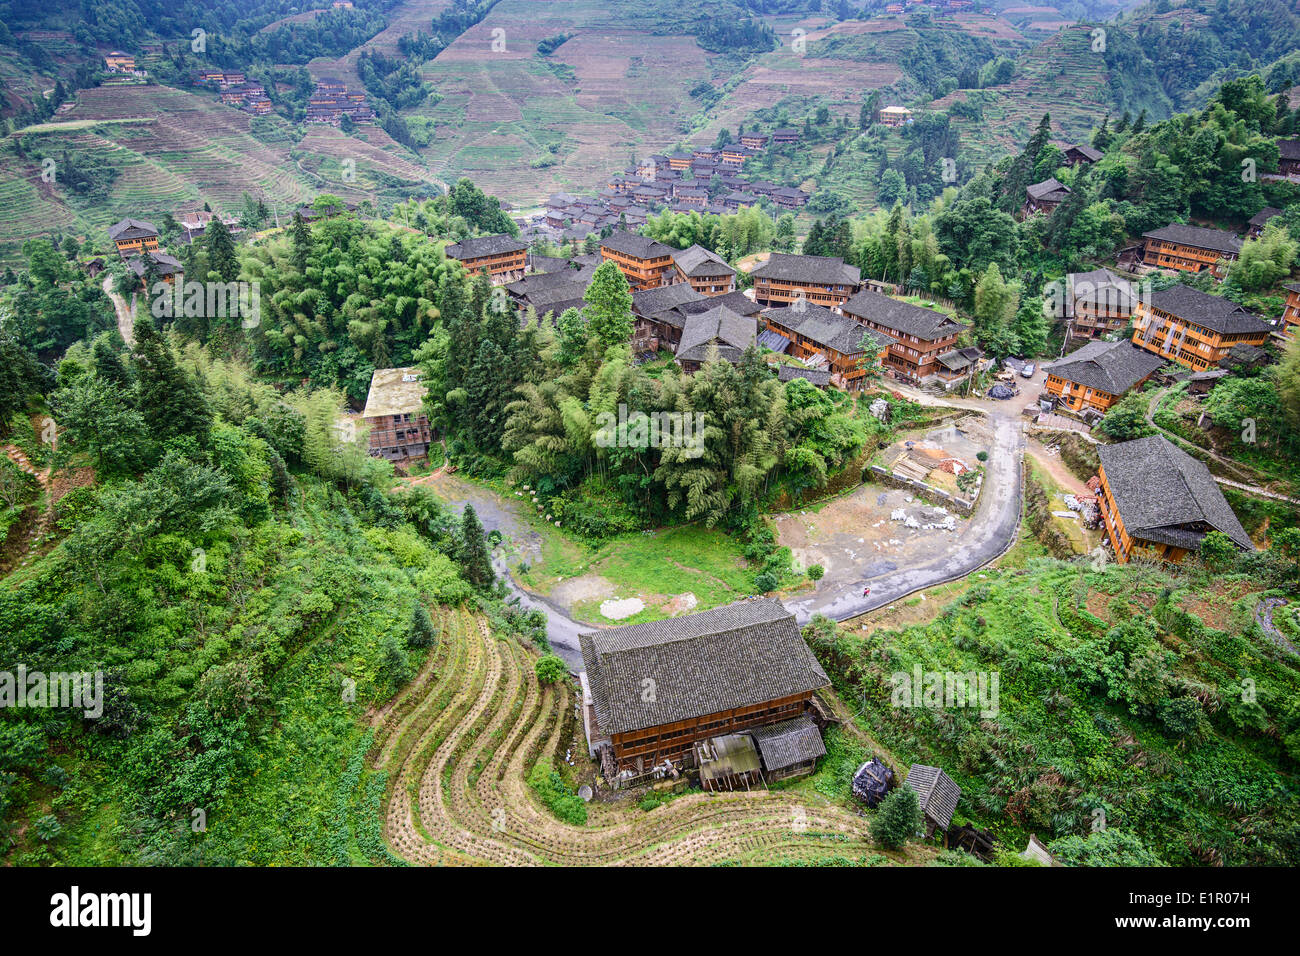 Longsheng village in Guangxi, China. - Stock Image